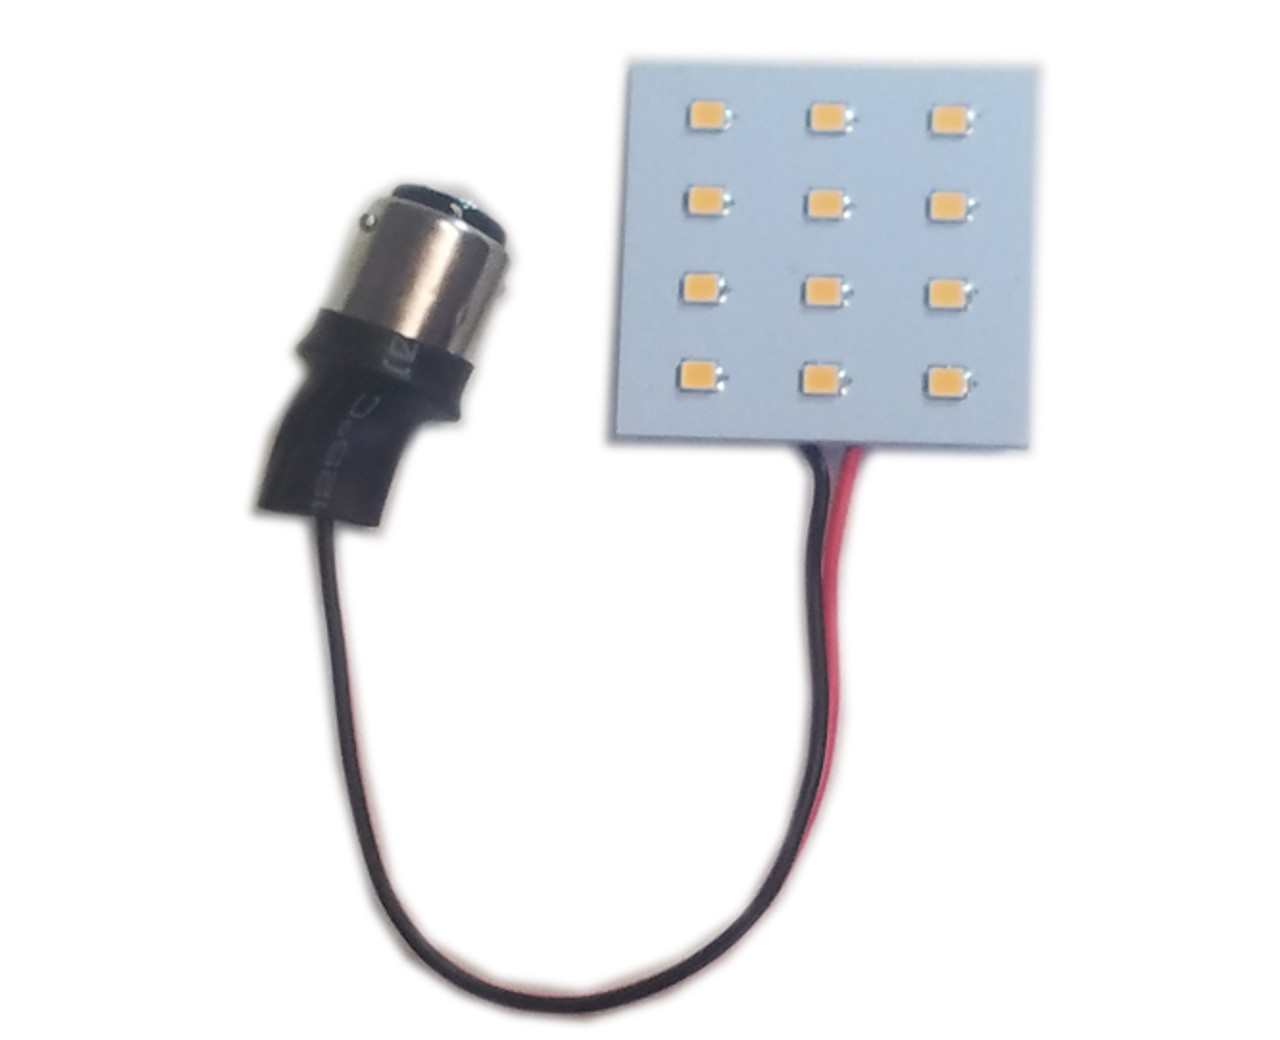 BA15S / BA15D 12-LED Replacement for Dome Lights - Replaces PL1004, 1141, 1142, 1156